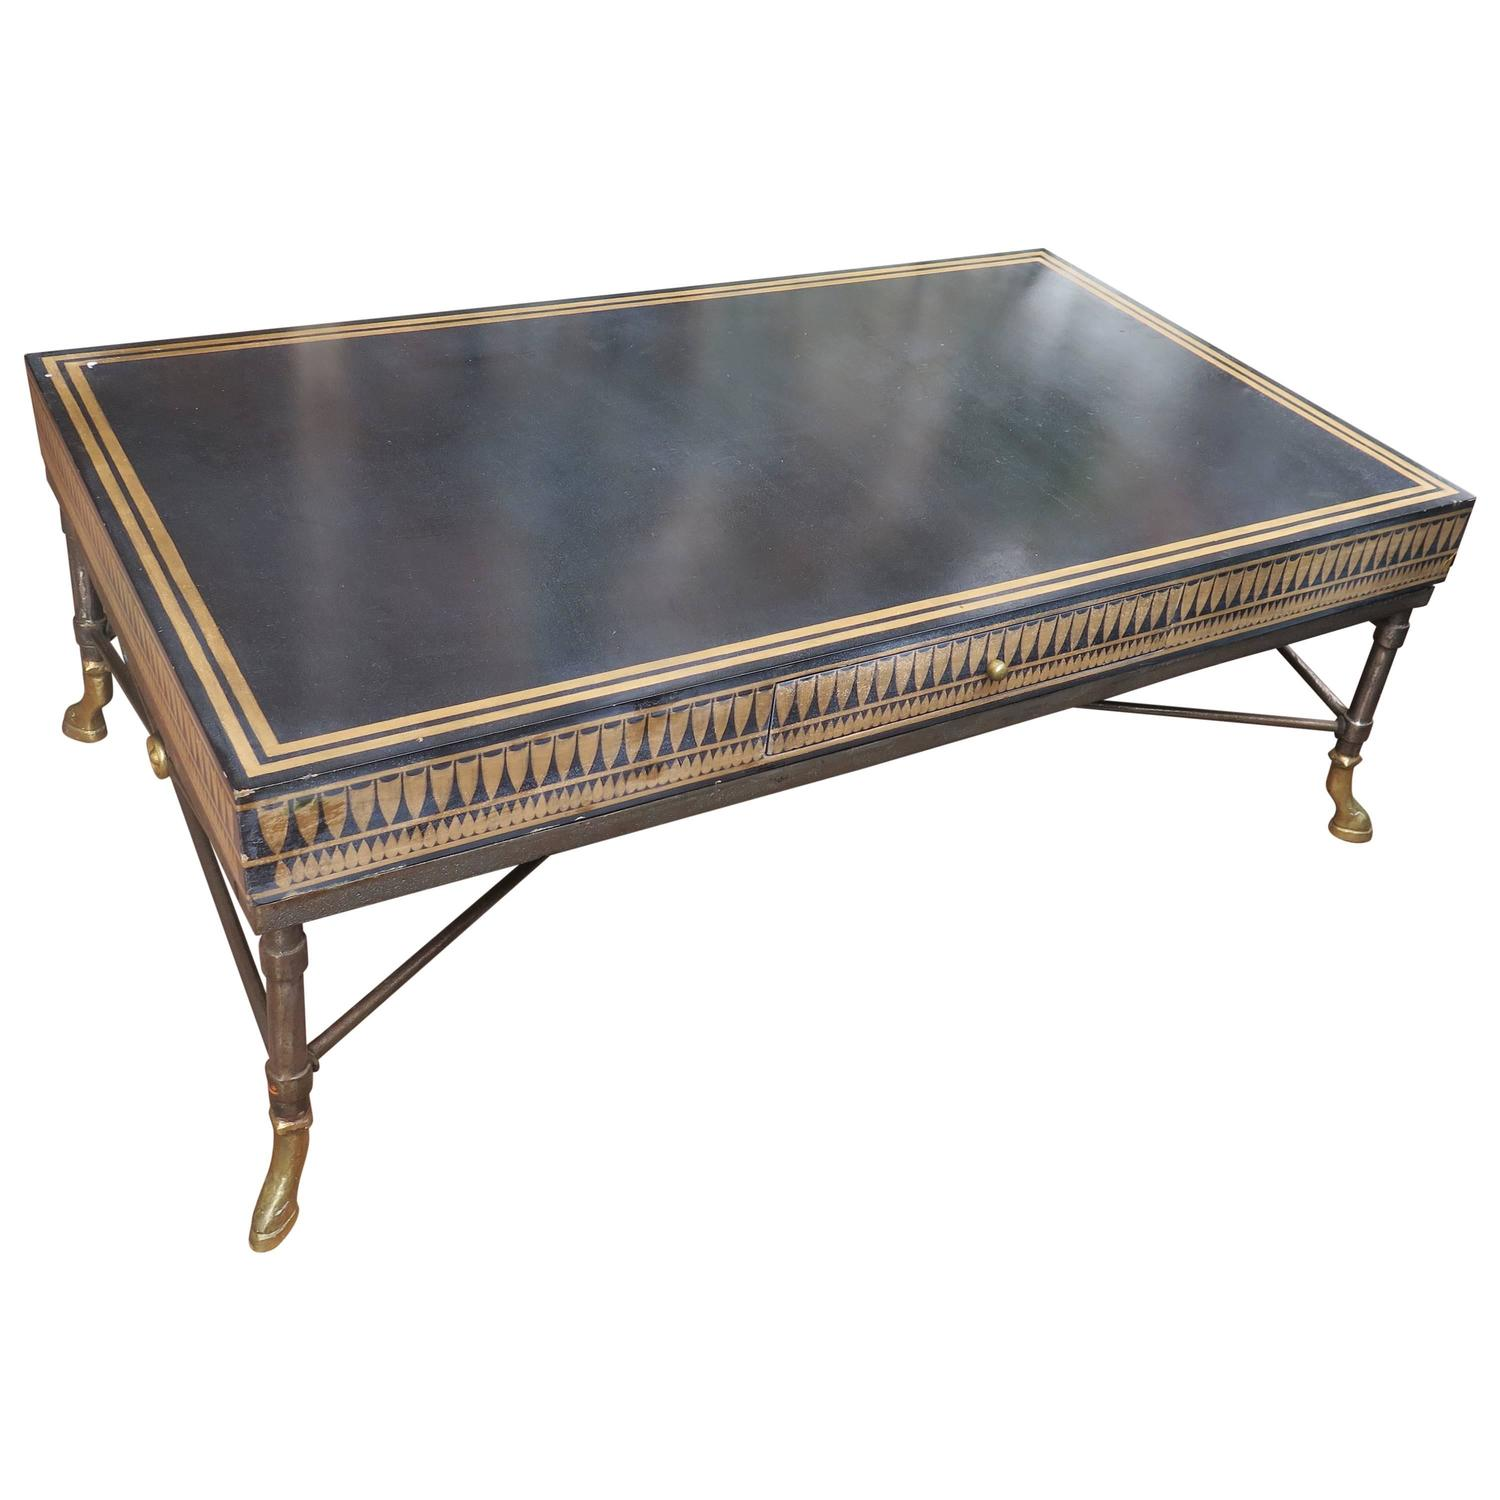 Unique Coffee Tables For Sale Unique Coffee Table With Bronze Feet Black And Gold Top